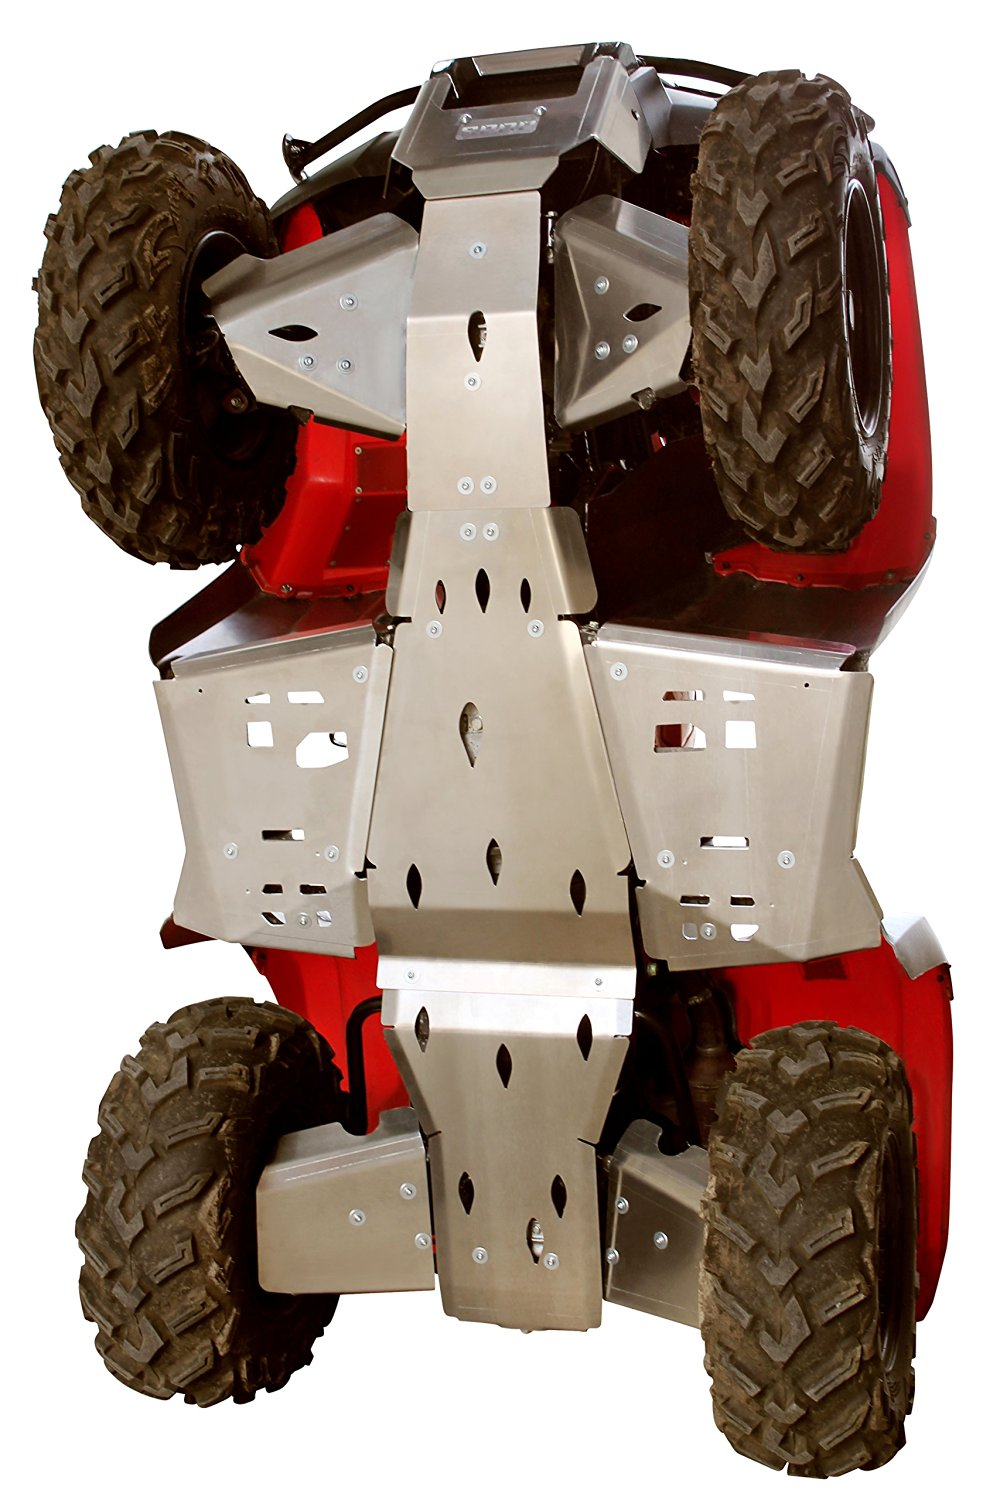 Skid plate HONDA TRX 500 IRS Rubicon/FA6, Complete set including rear and front A-Arm guards in 4mm (1 37/64 in) aircraft aluminum